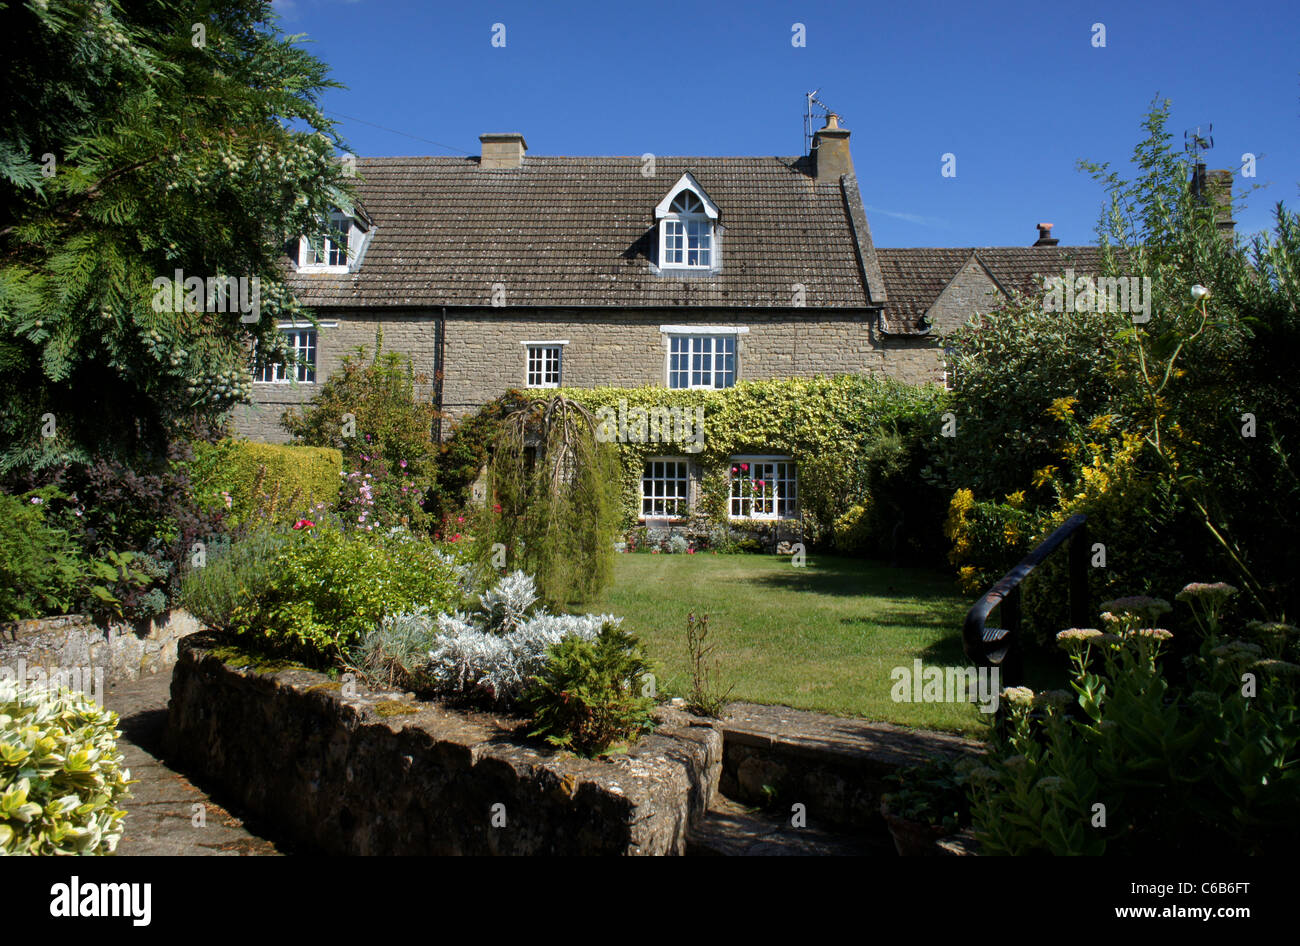 Country houses in the pretty village of Cranford St John, UK - Stock Image